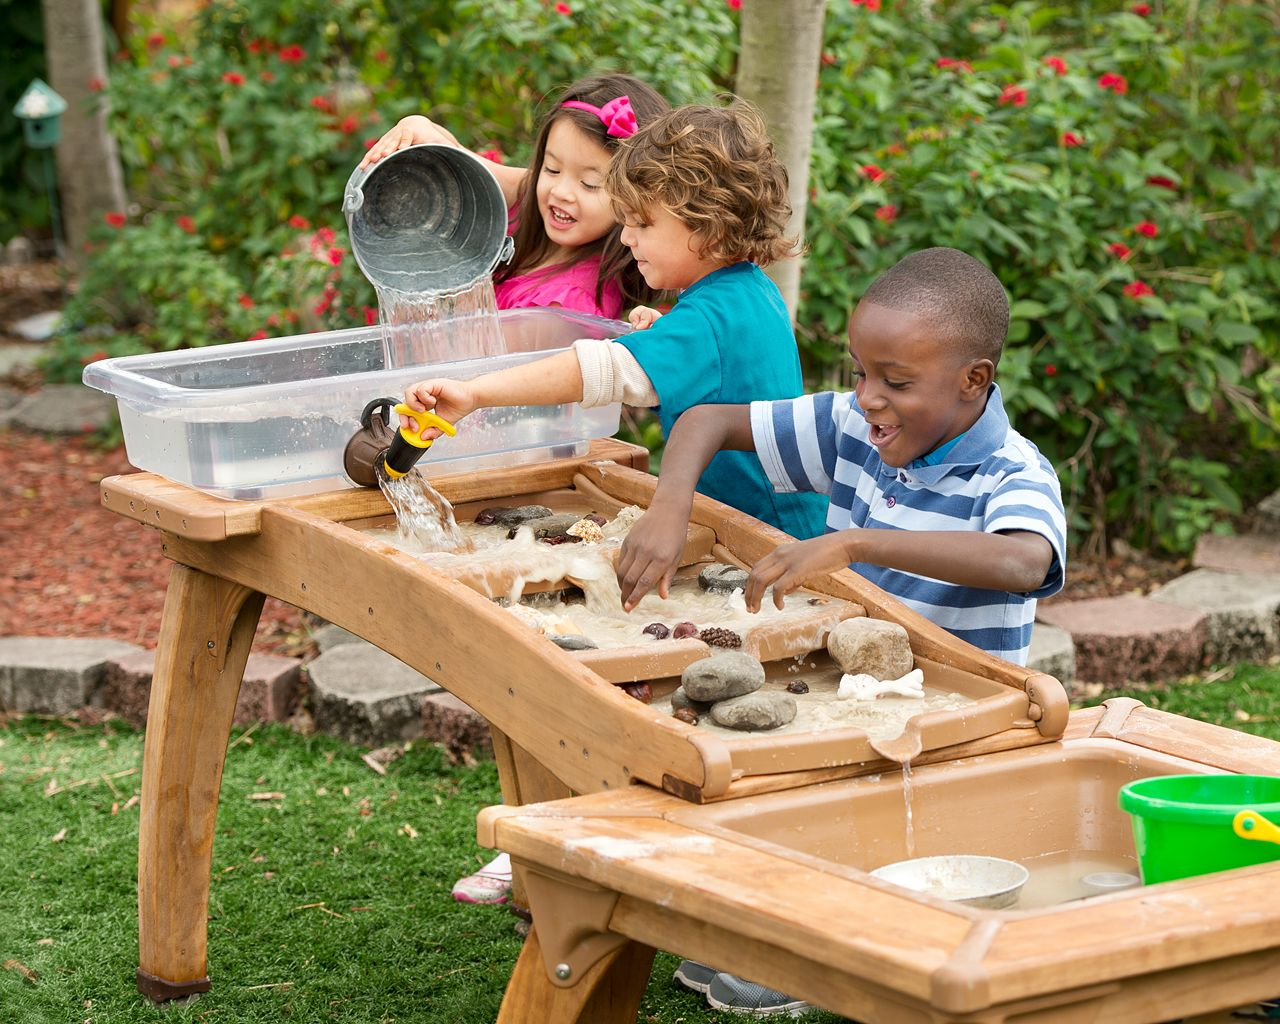 Outdoor play and safety